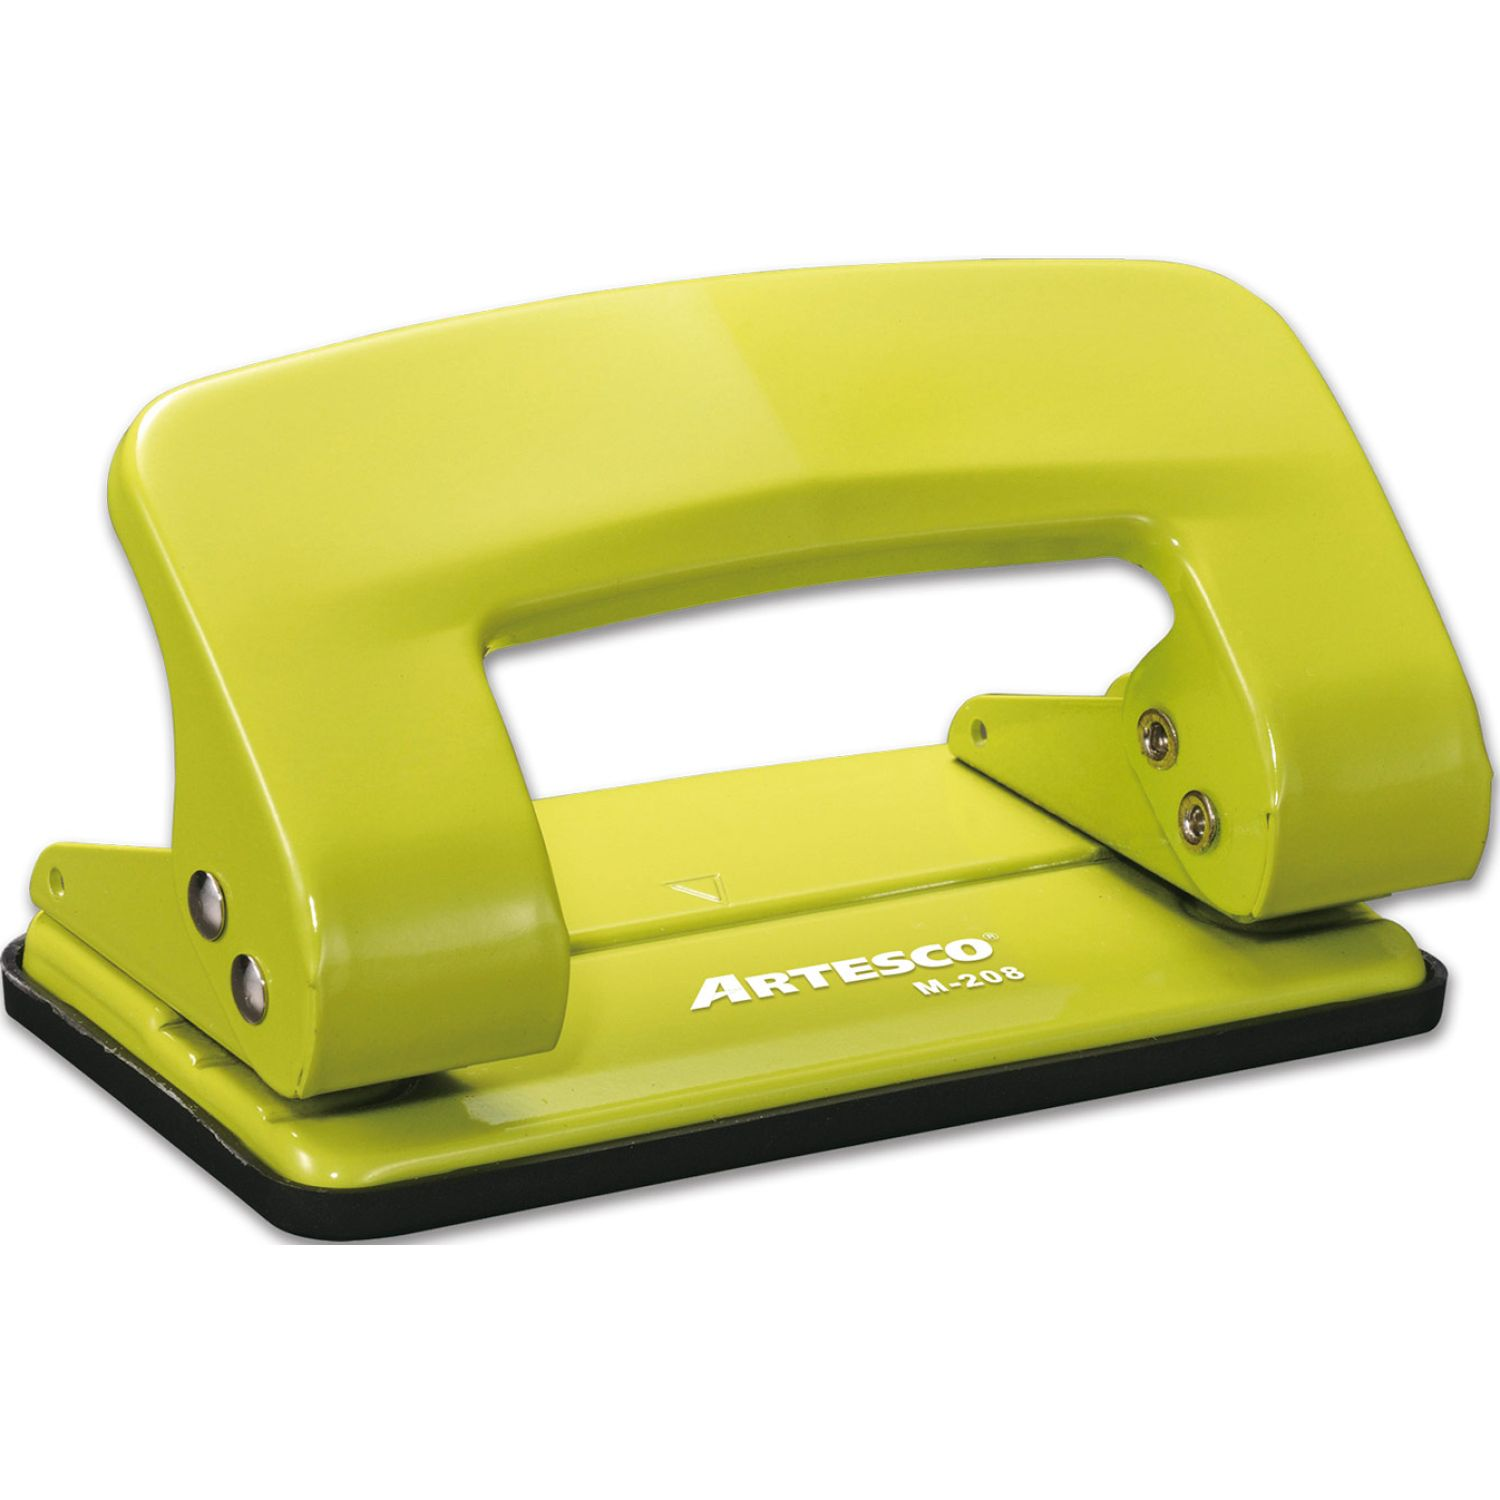 Artesco Perforador Colors M-208 Verde Perforadoras